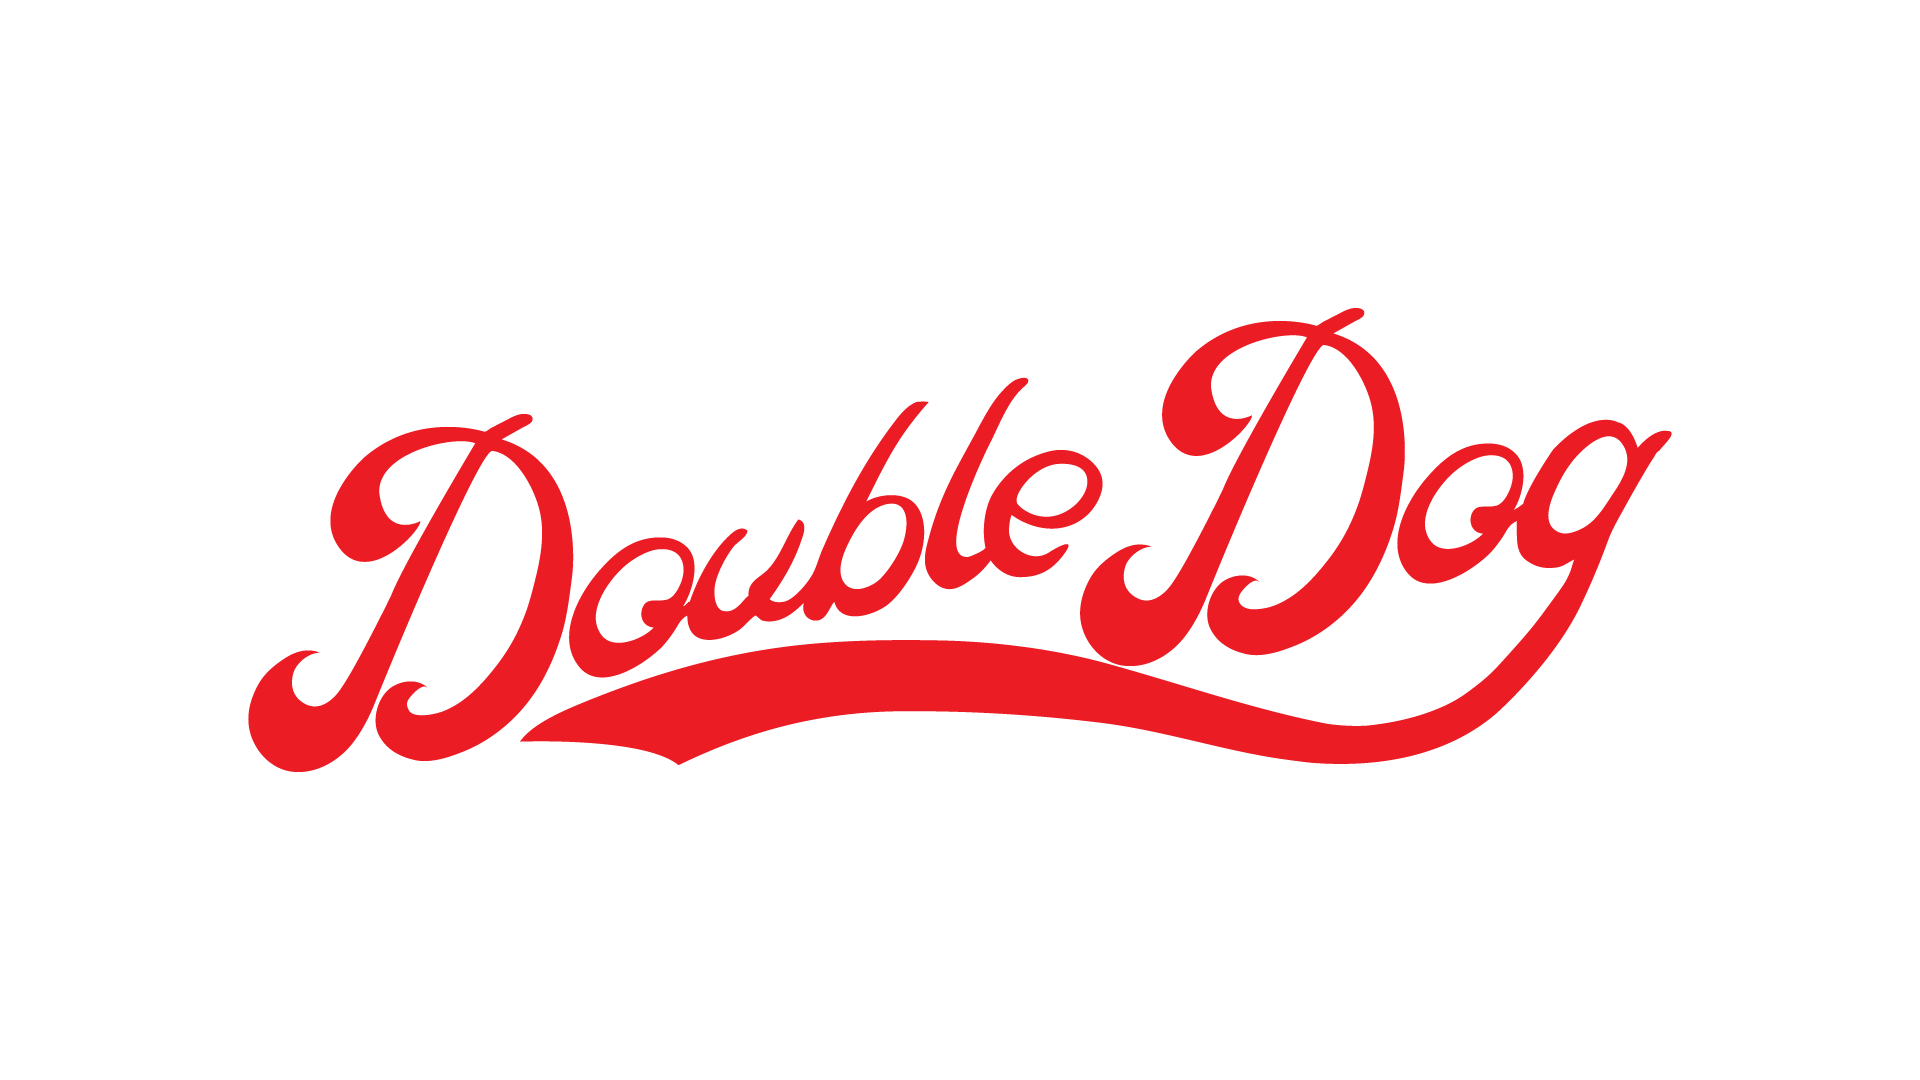 The Double Dog